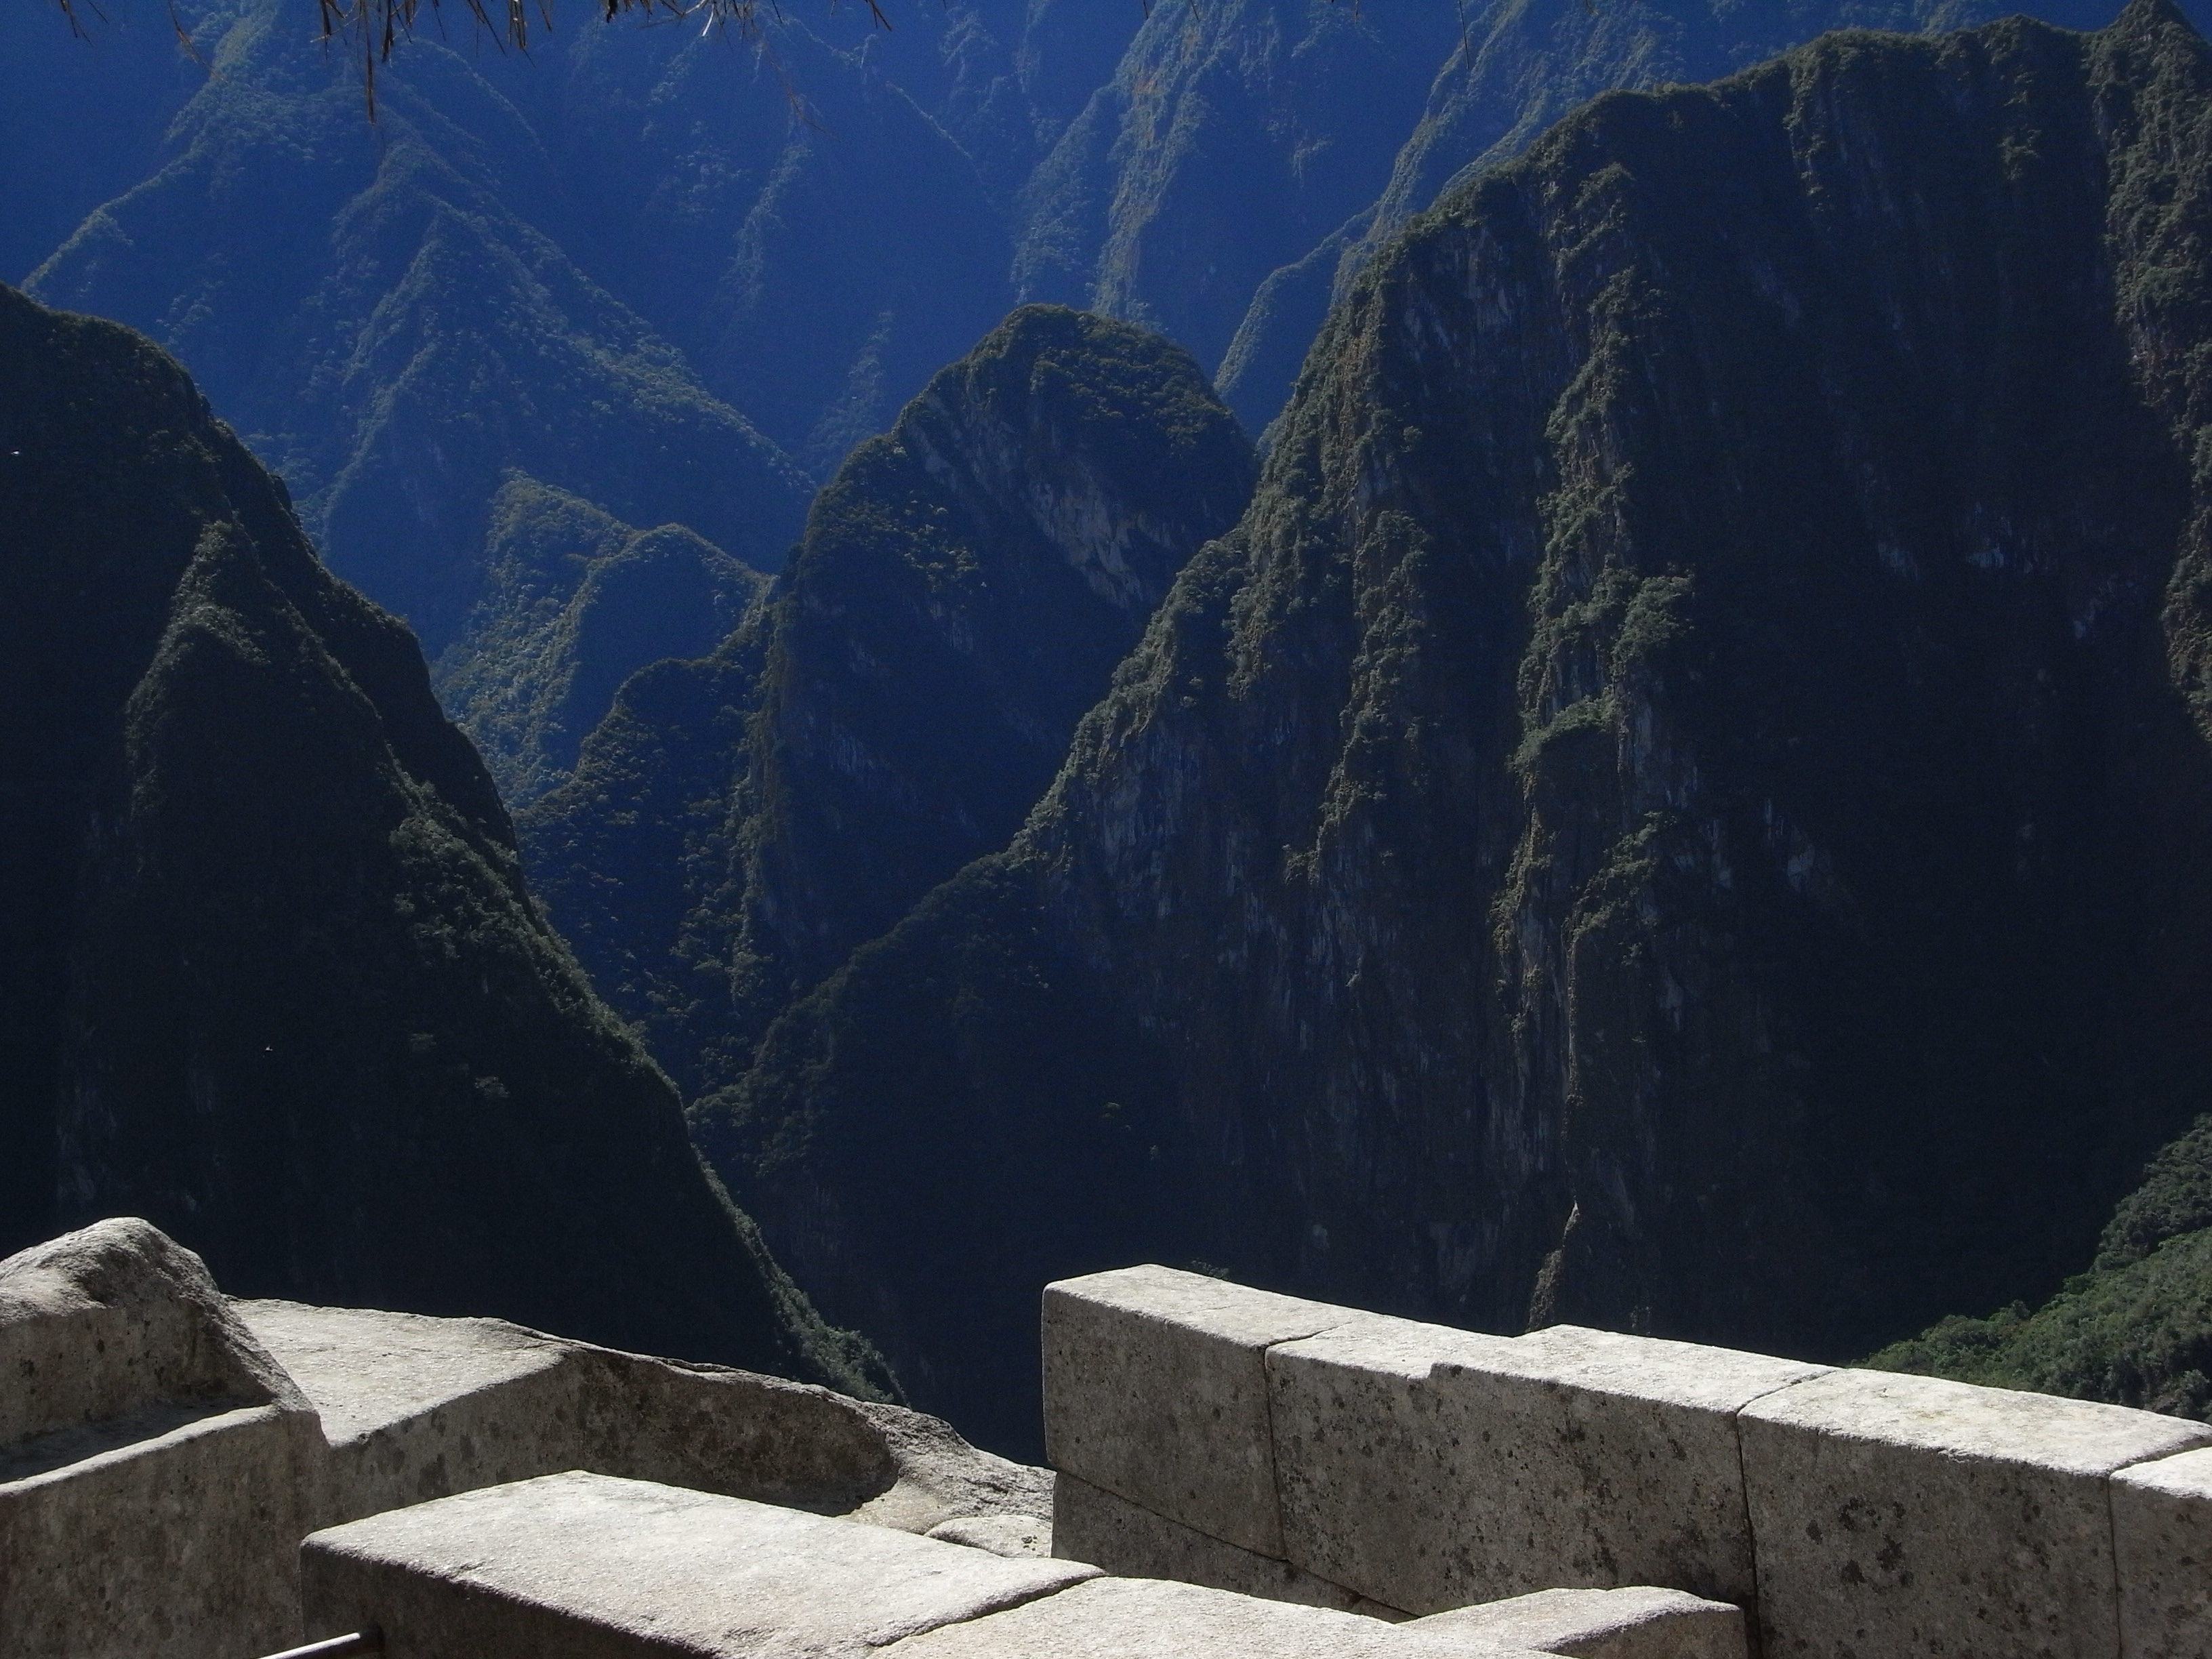 looking into the valley from Machu Picchu